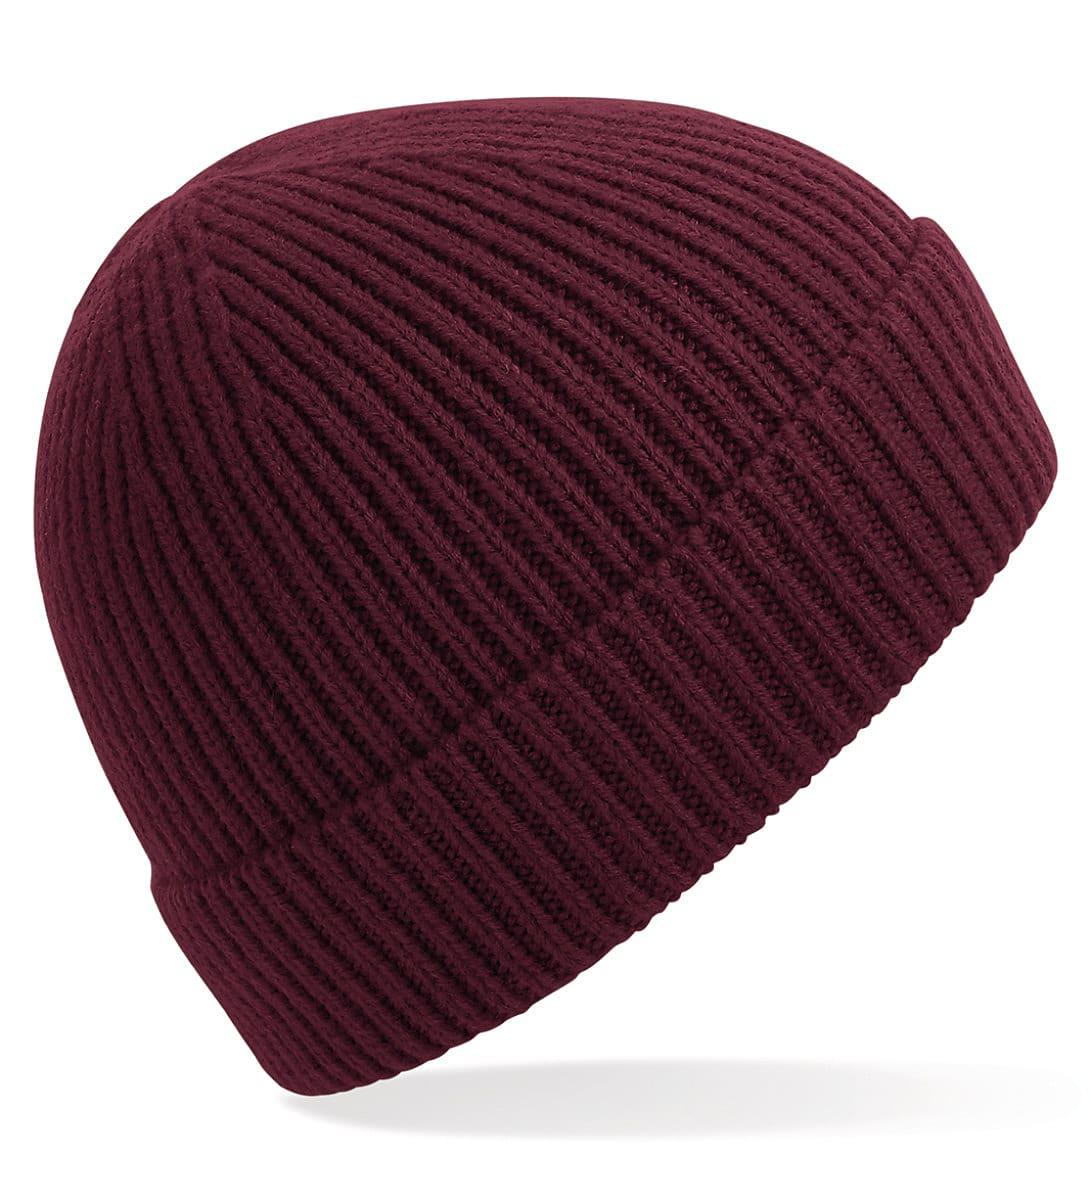 Beechfield Engineered Knit Ribbed Beanie Hat in Burgundy (Product Code: B380)